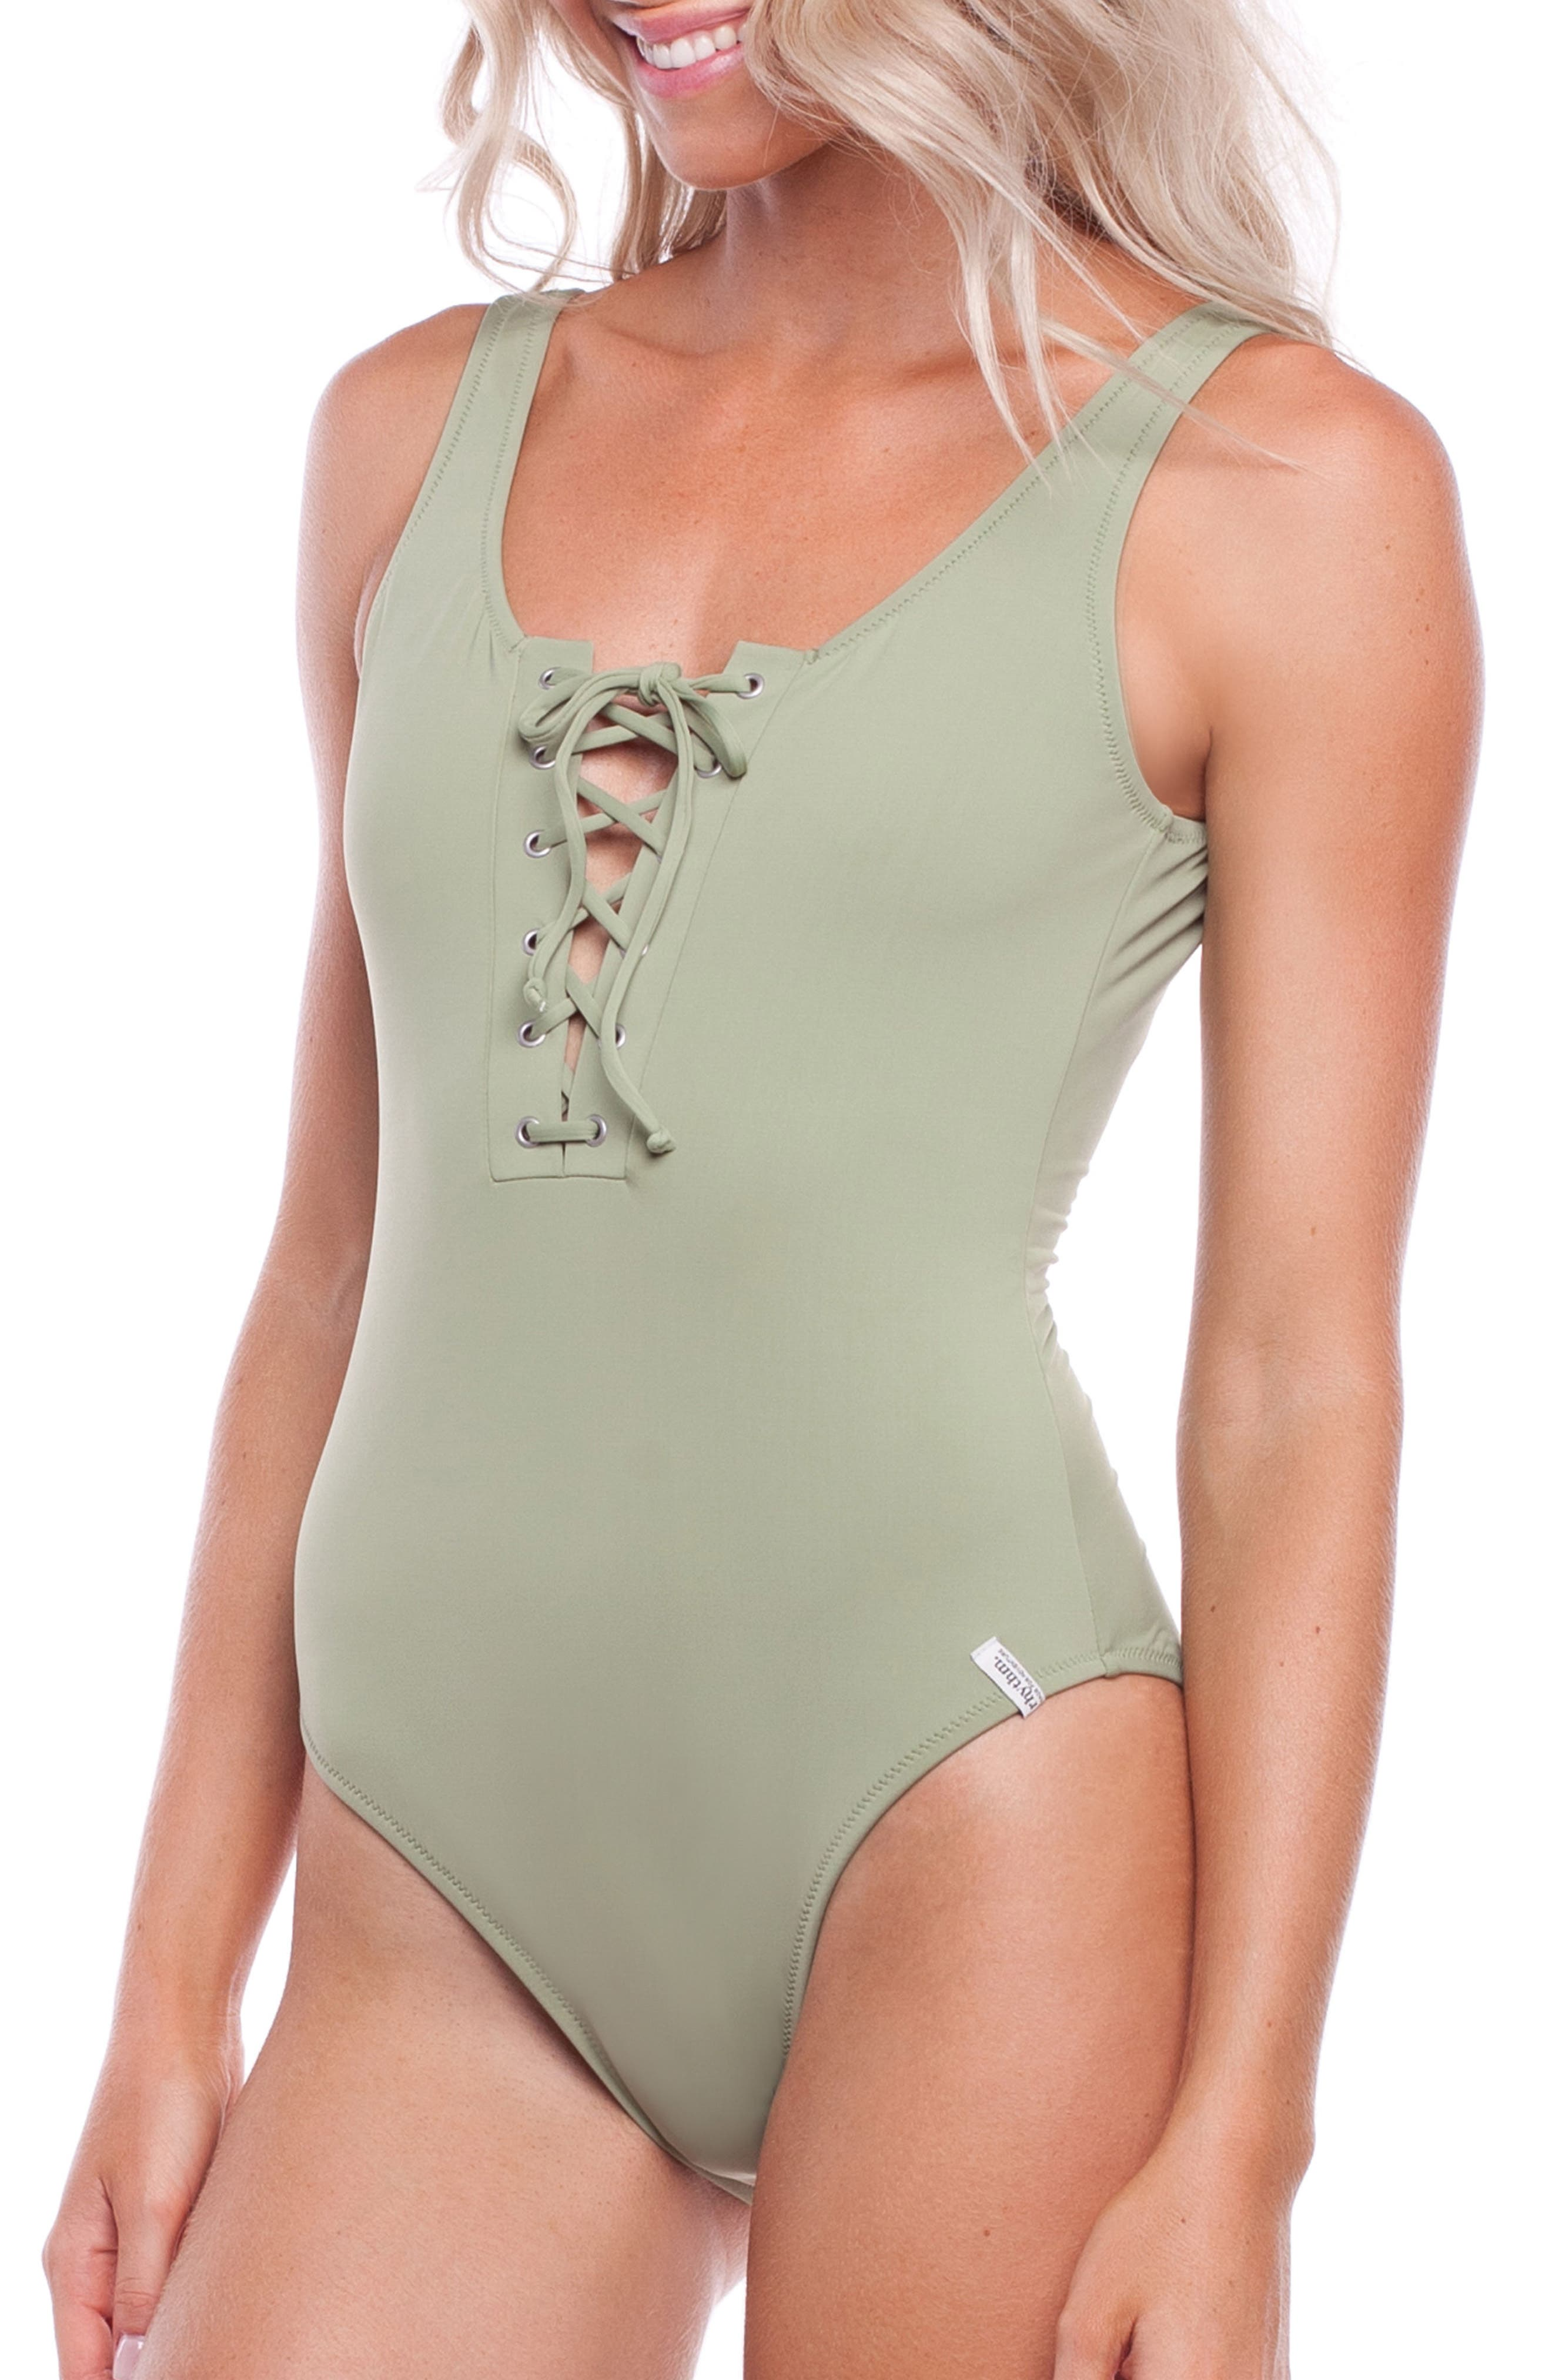 Sunchaser One-Piece Swimsuit,                             Alternate thumbnail 3, color,                             PALM